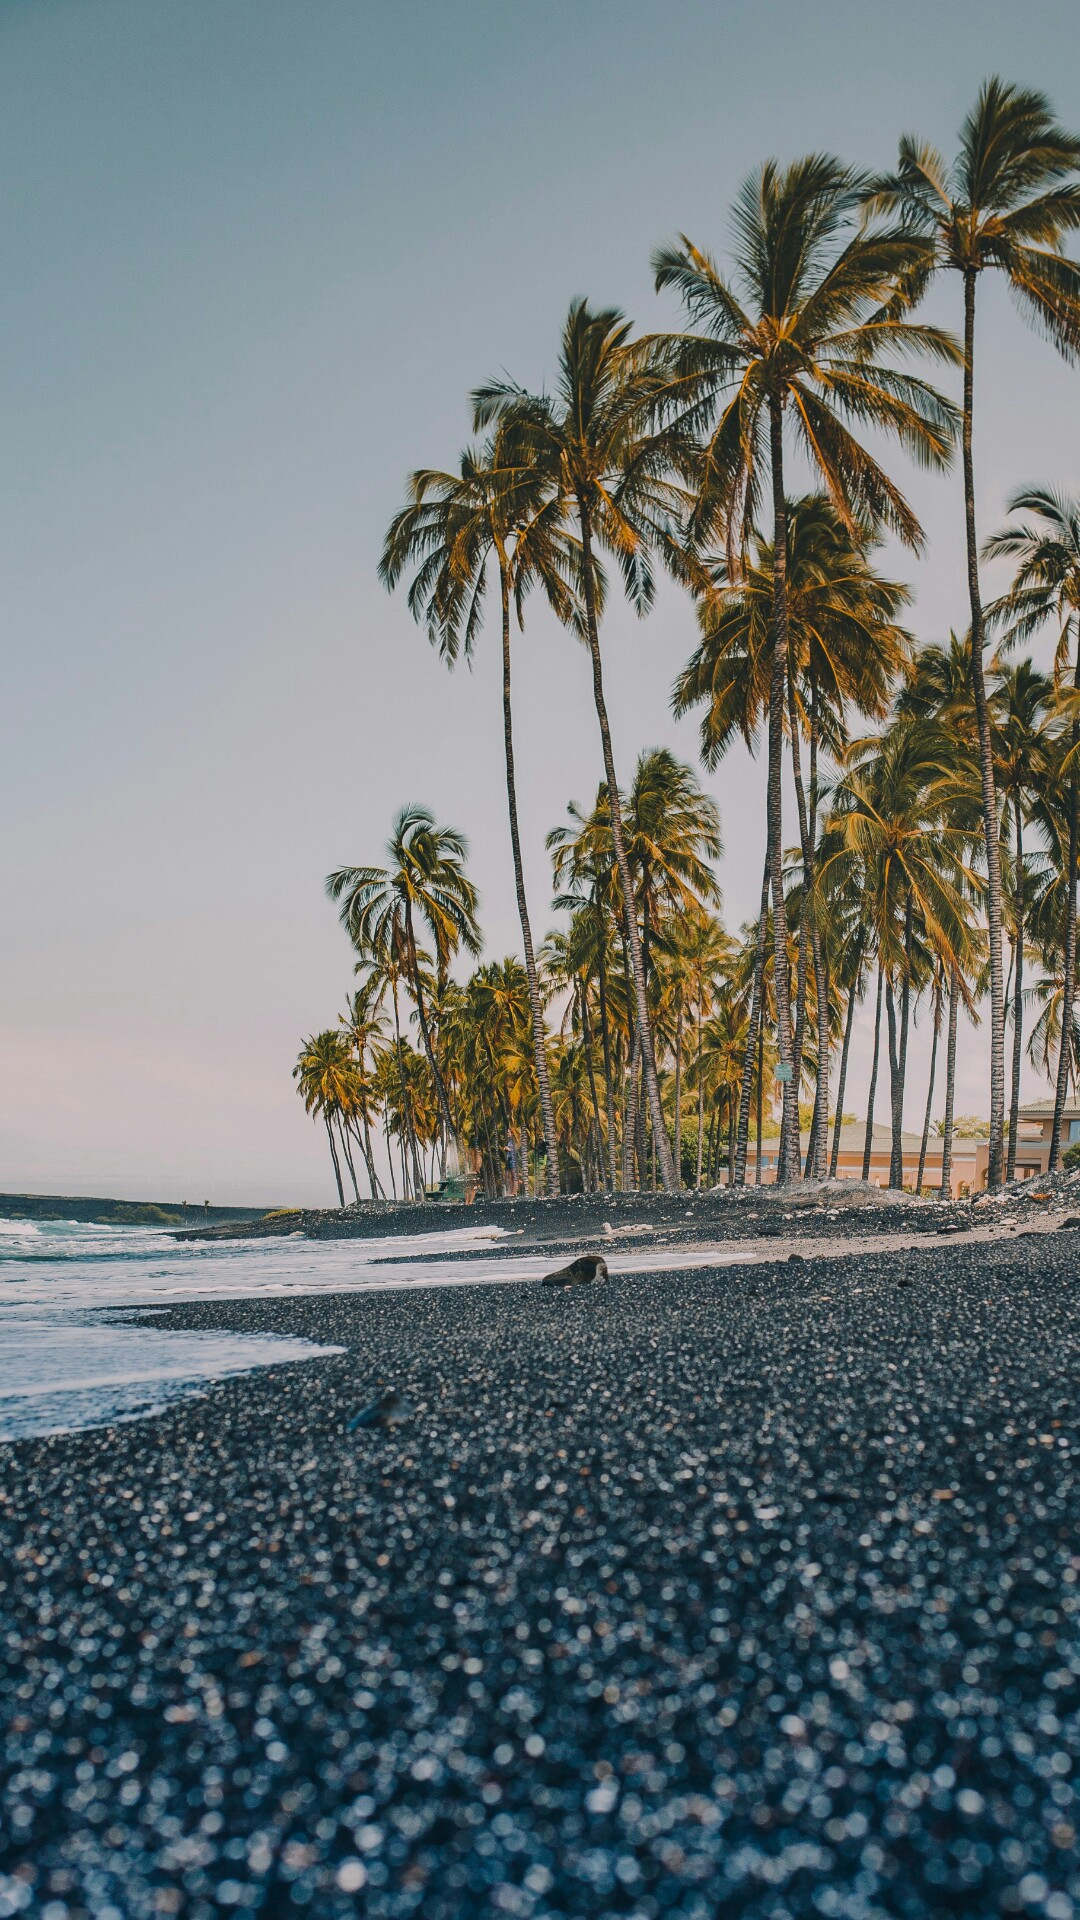 High Resolution Nature Wallpaper For Mobile Phone With Picture Of Coconut Trees On Beach Hd Wallpapers Desktop Background Mobile Phone Wallpapers